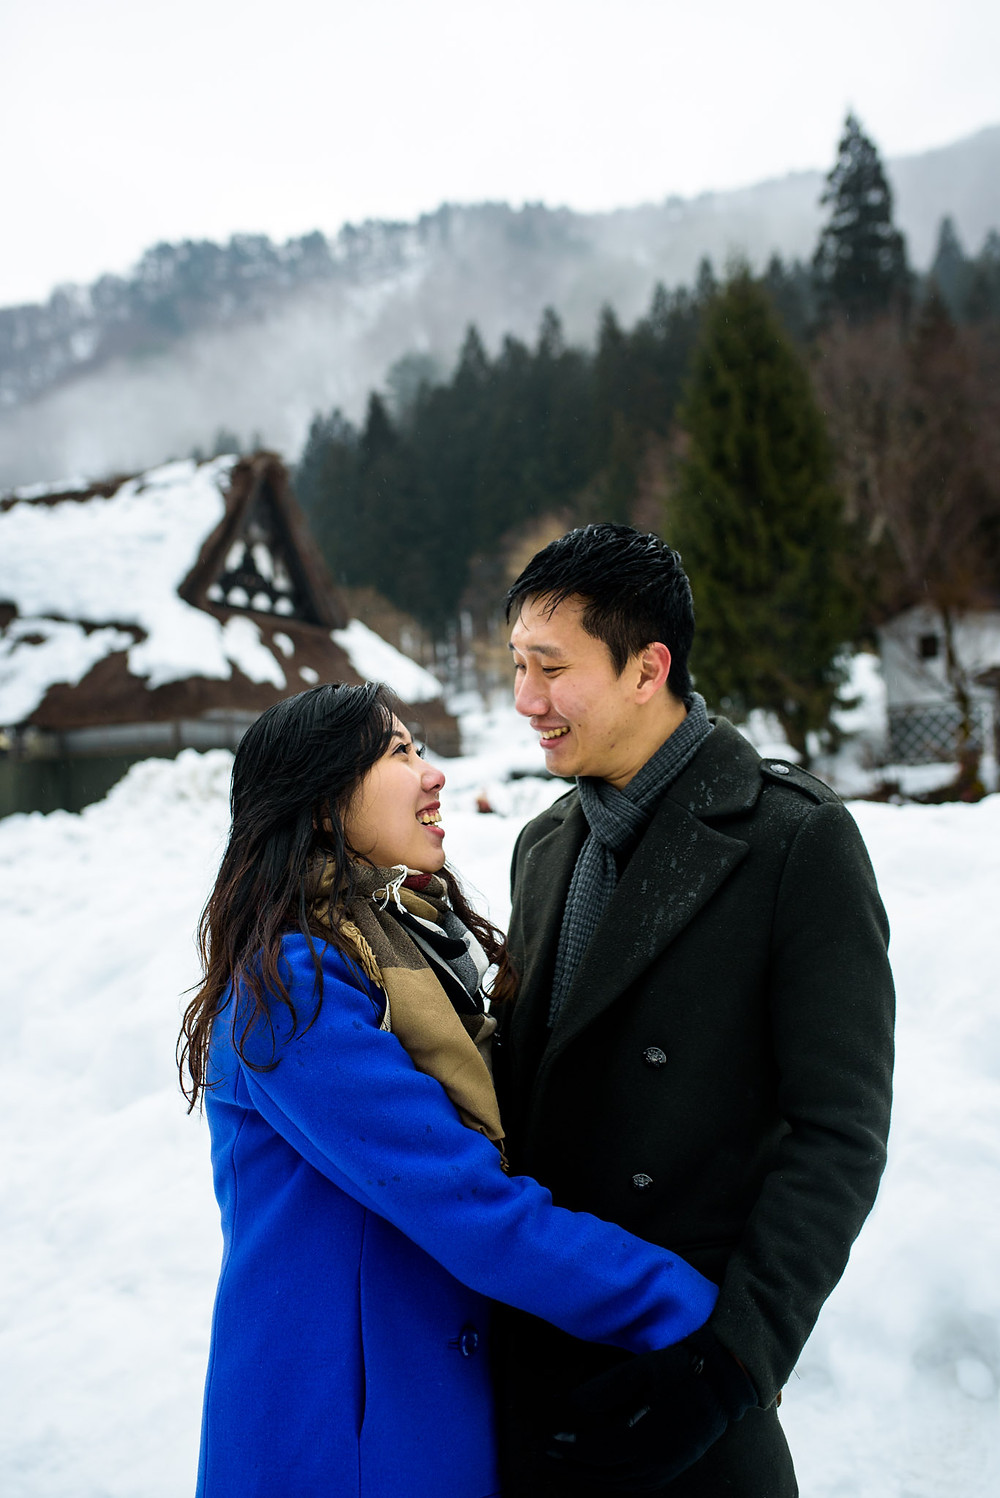 Mira and Sin smile at each other in Shirakawago